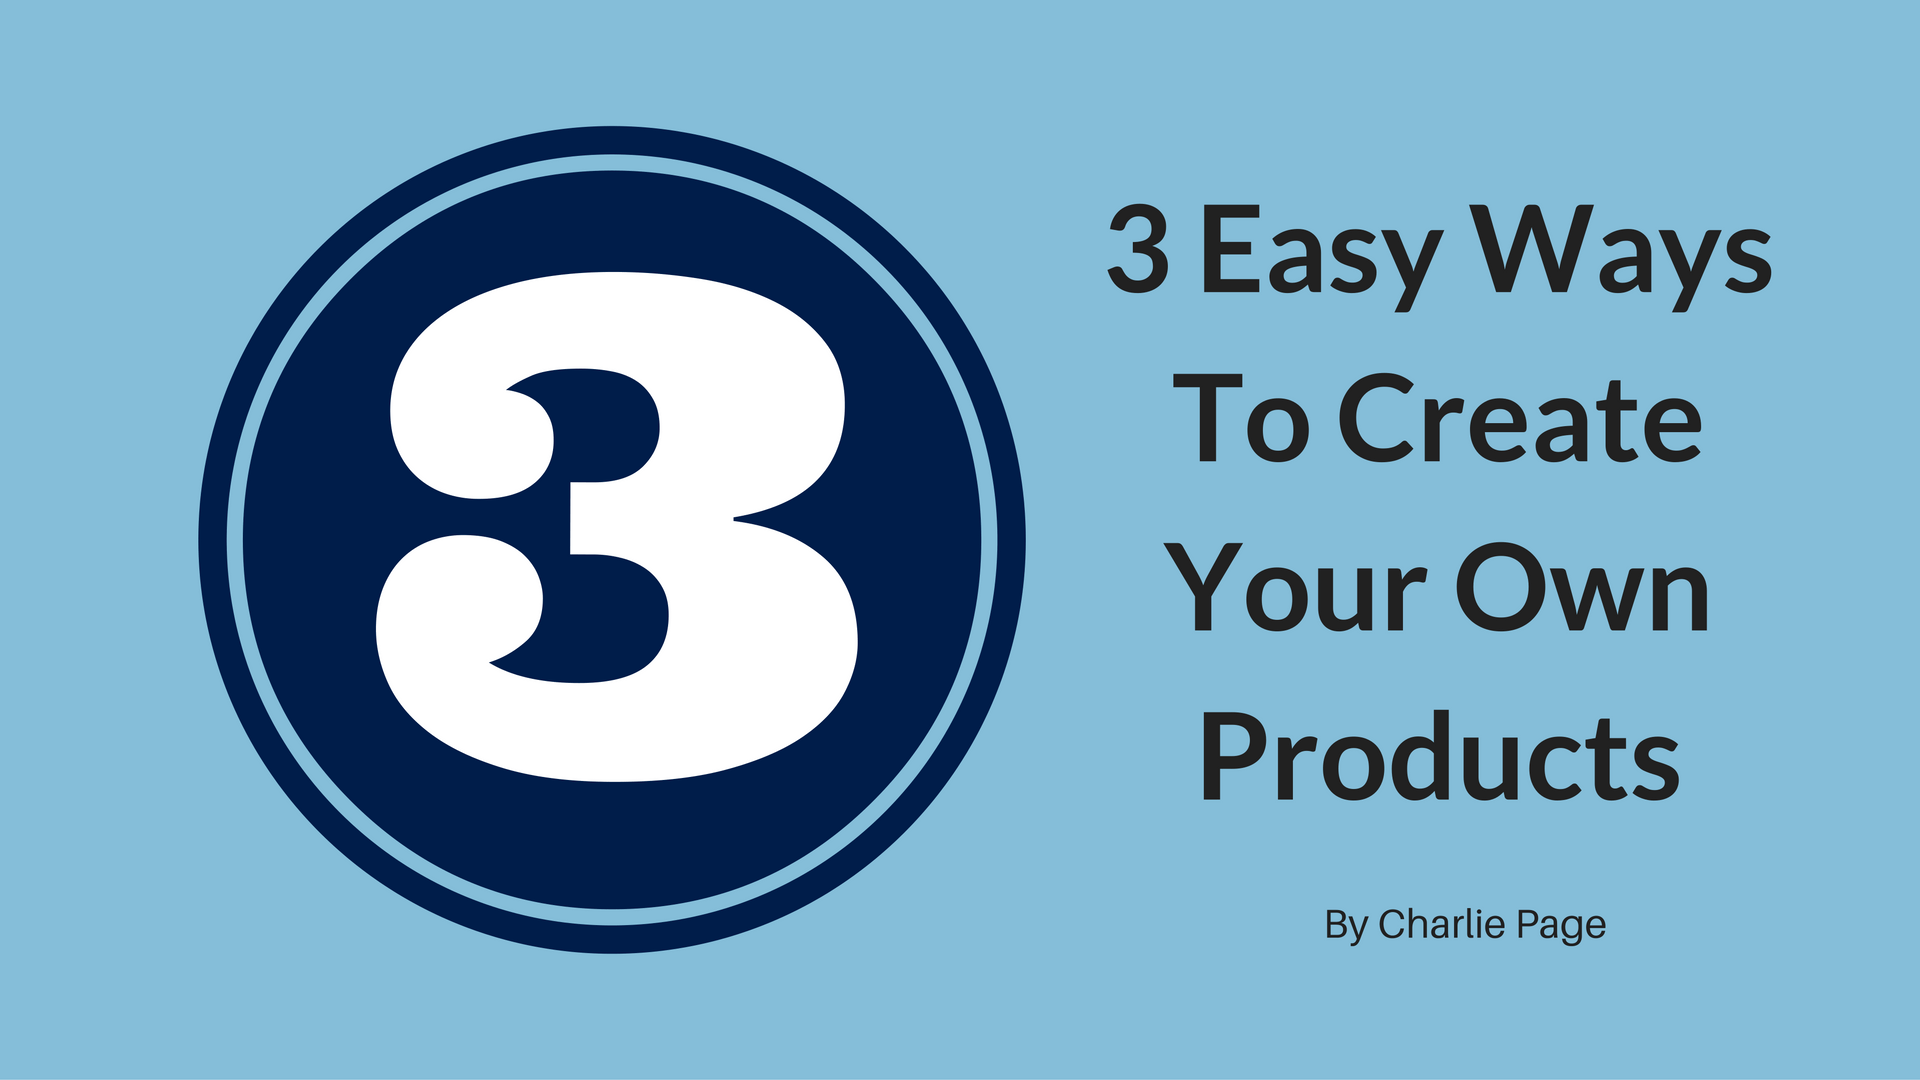 3 Easy Ways To Create Your Own Products